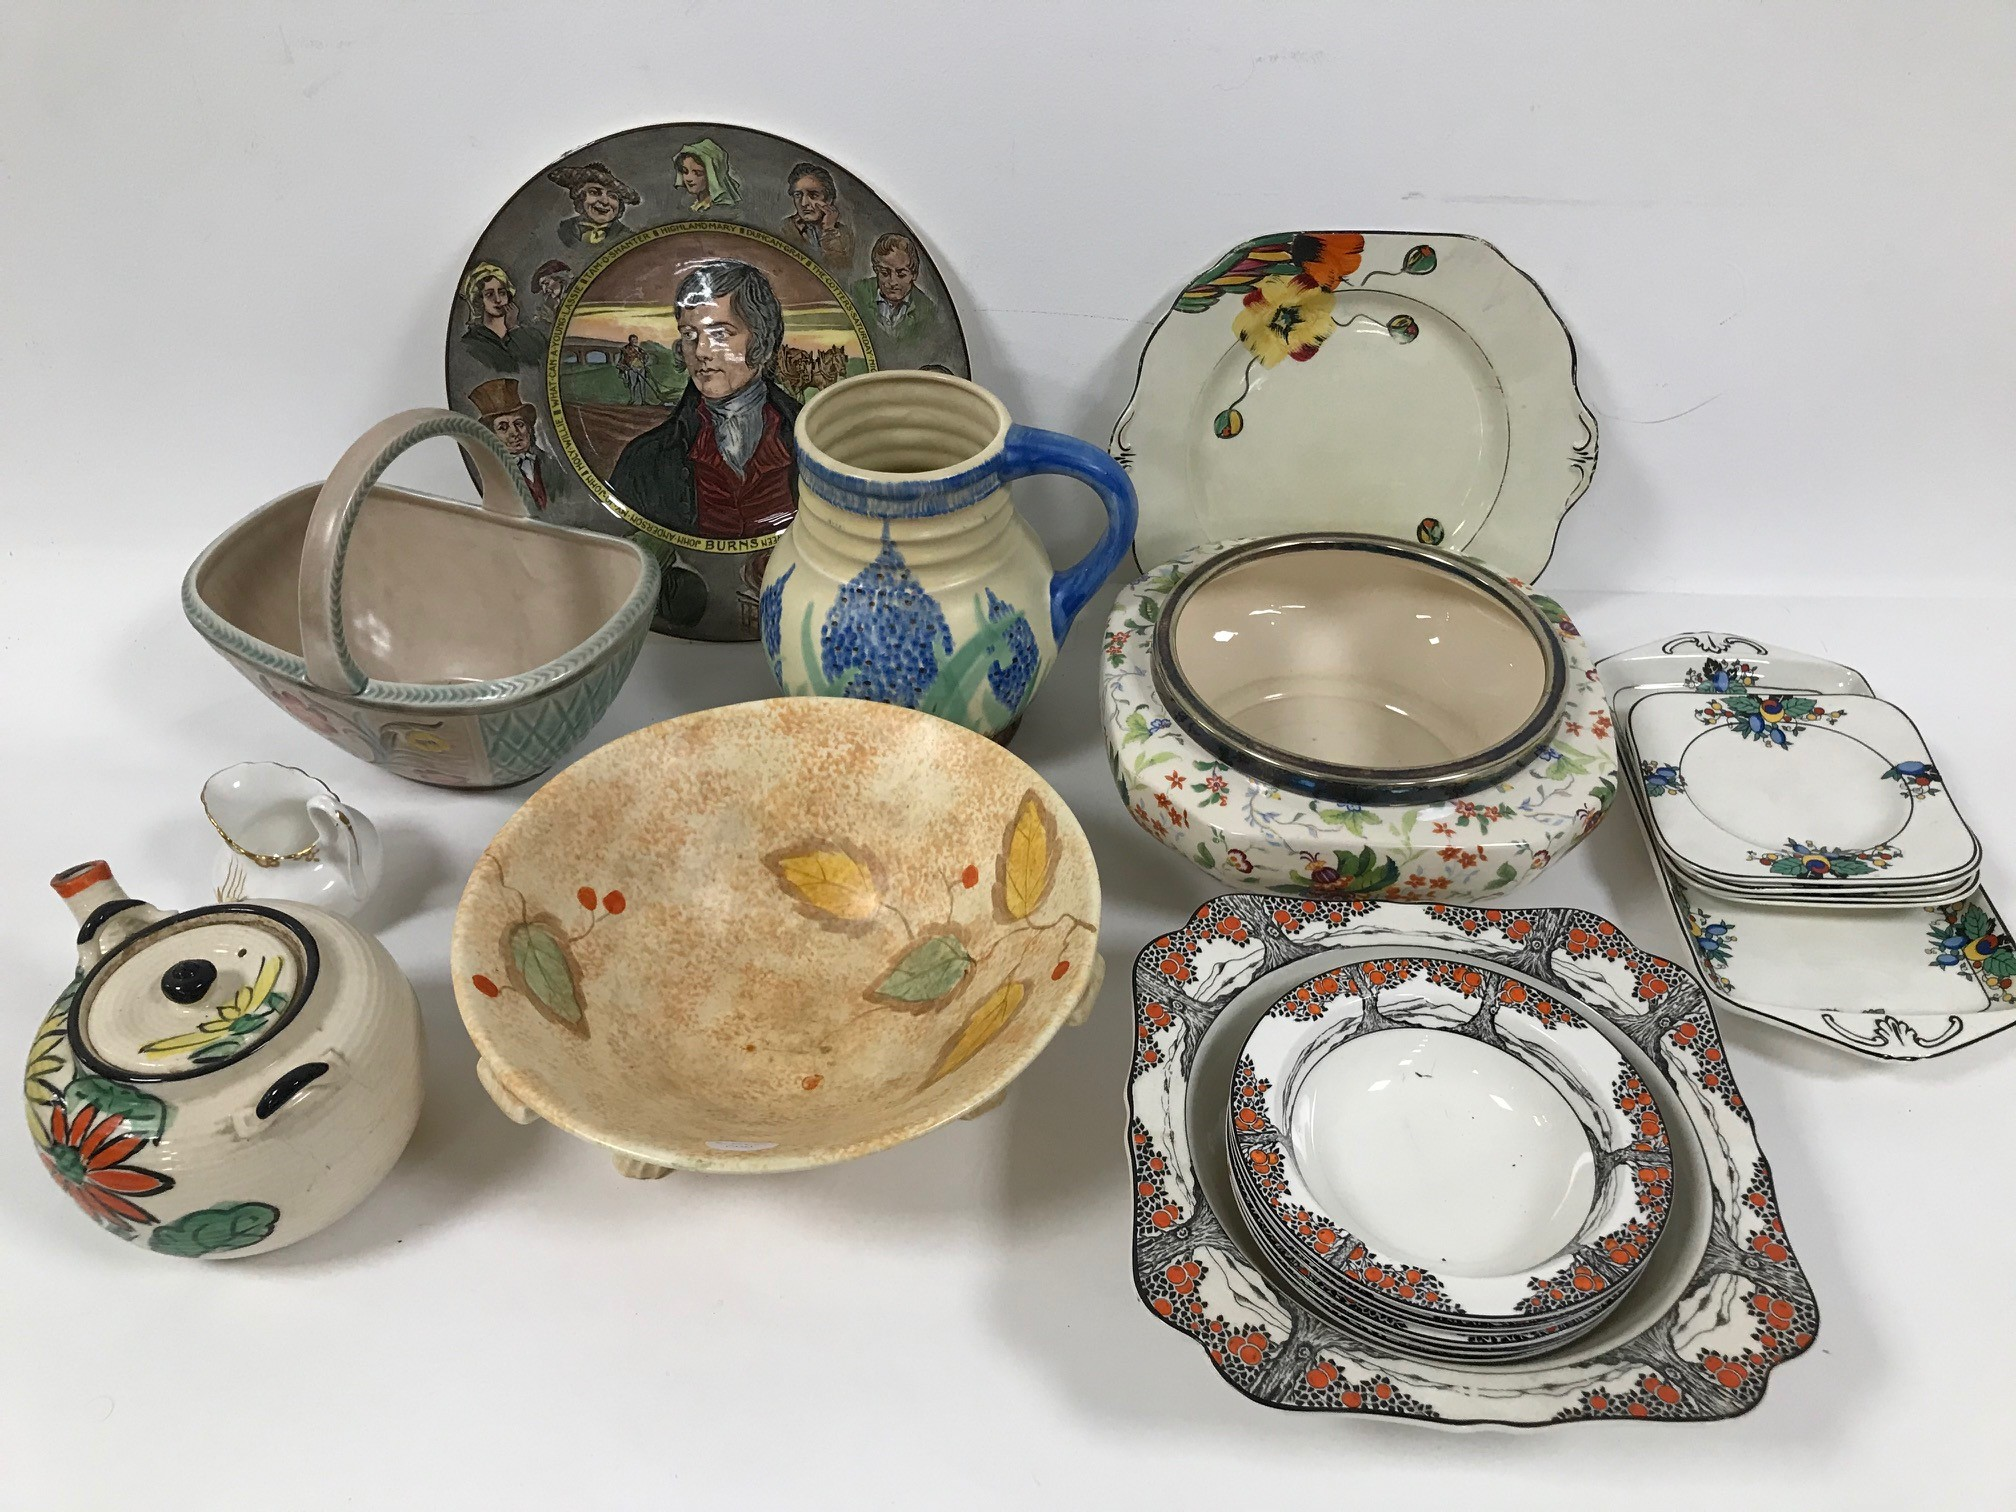 A collection of Art Deco and later ceramics, including a Royal Doulton Burns plate, a Roskyl pottery